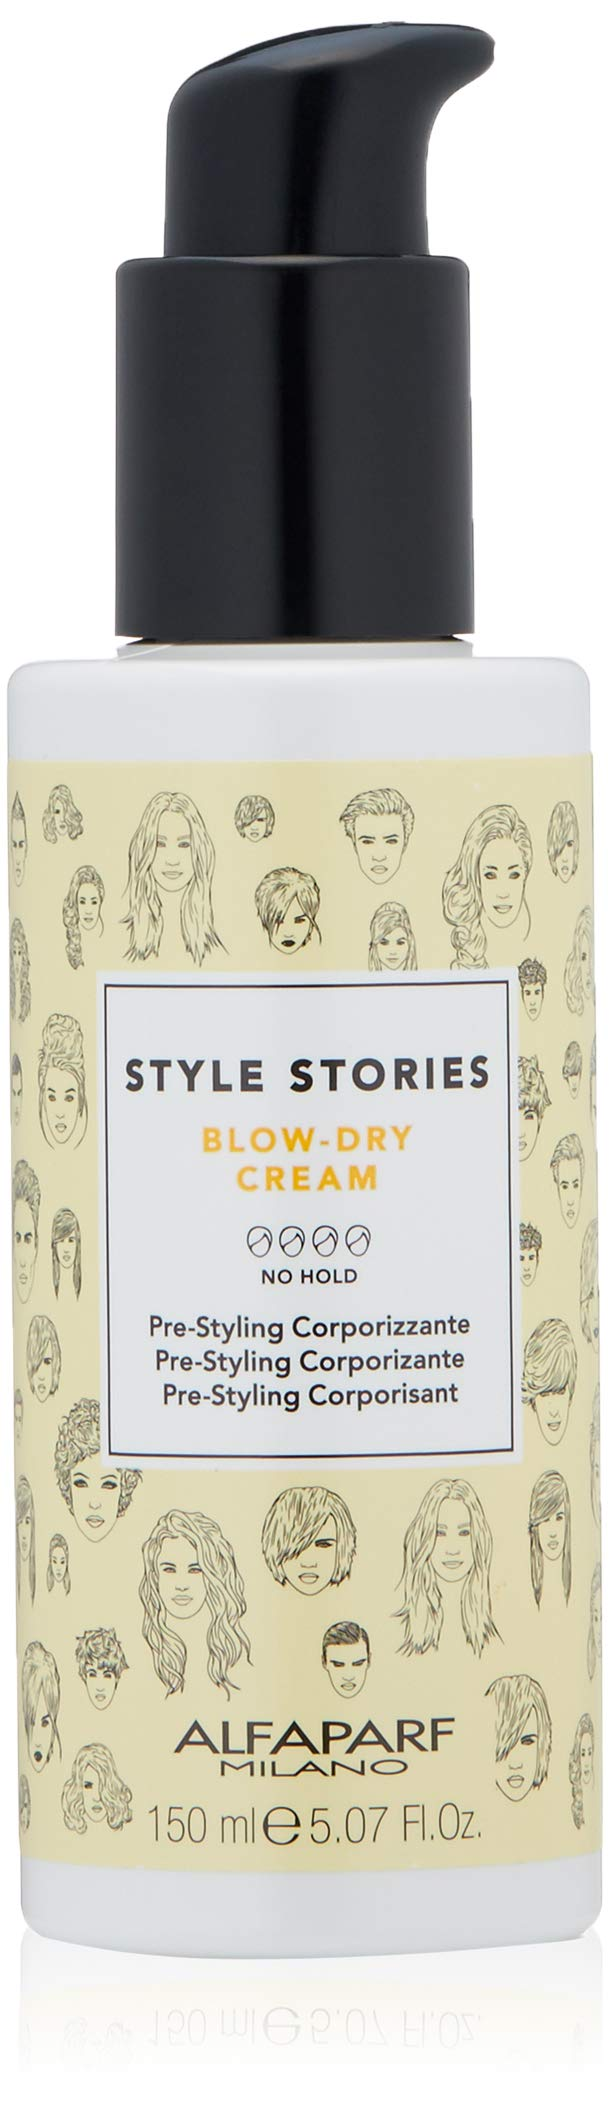 Alfaparf Milano Style Stories Blow-Dry Cream Styling Product - Professional Salon Quality - Increases Body, Makes Drying Quicker and Easier, Fights Frizz - 5.07 fl. oz. by Alfaparf Milano